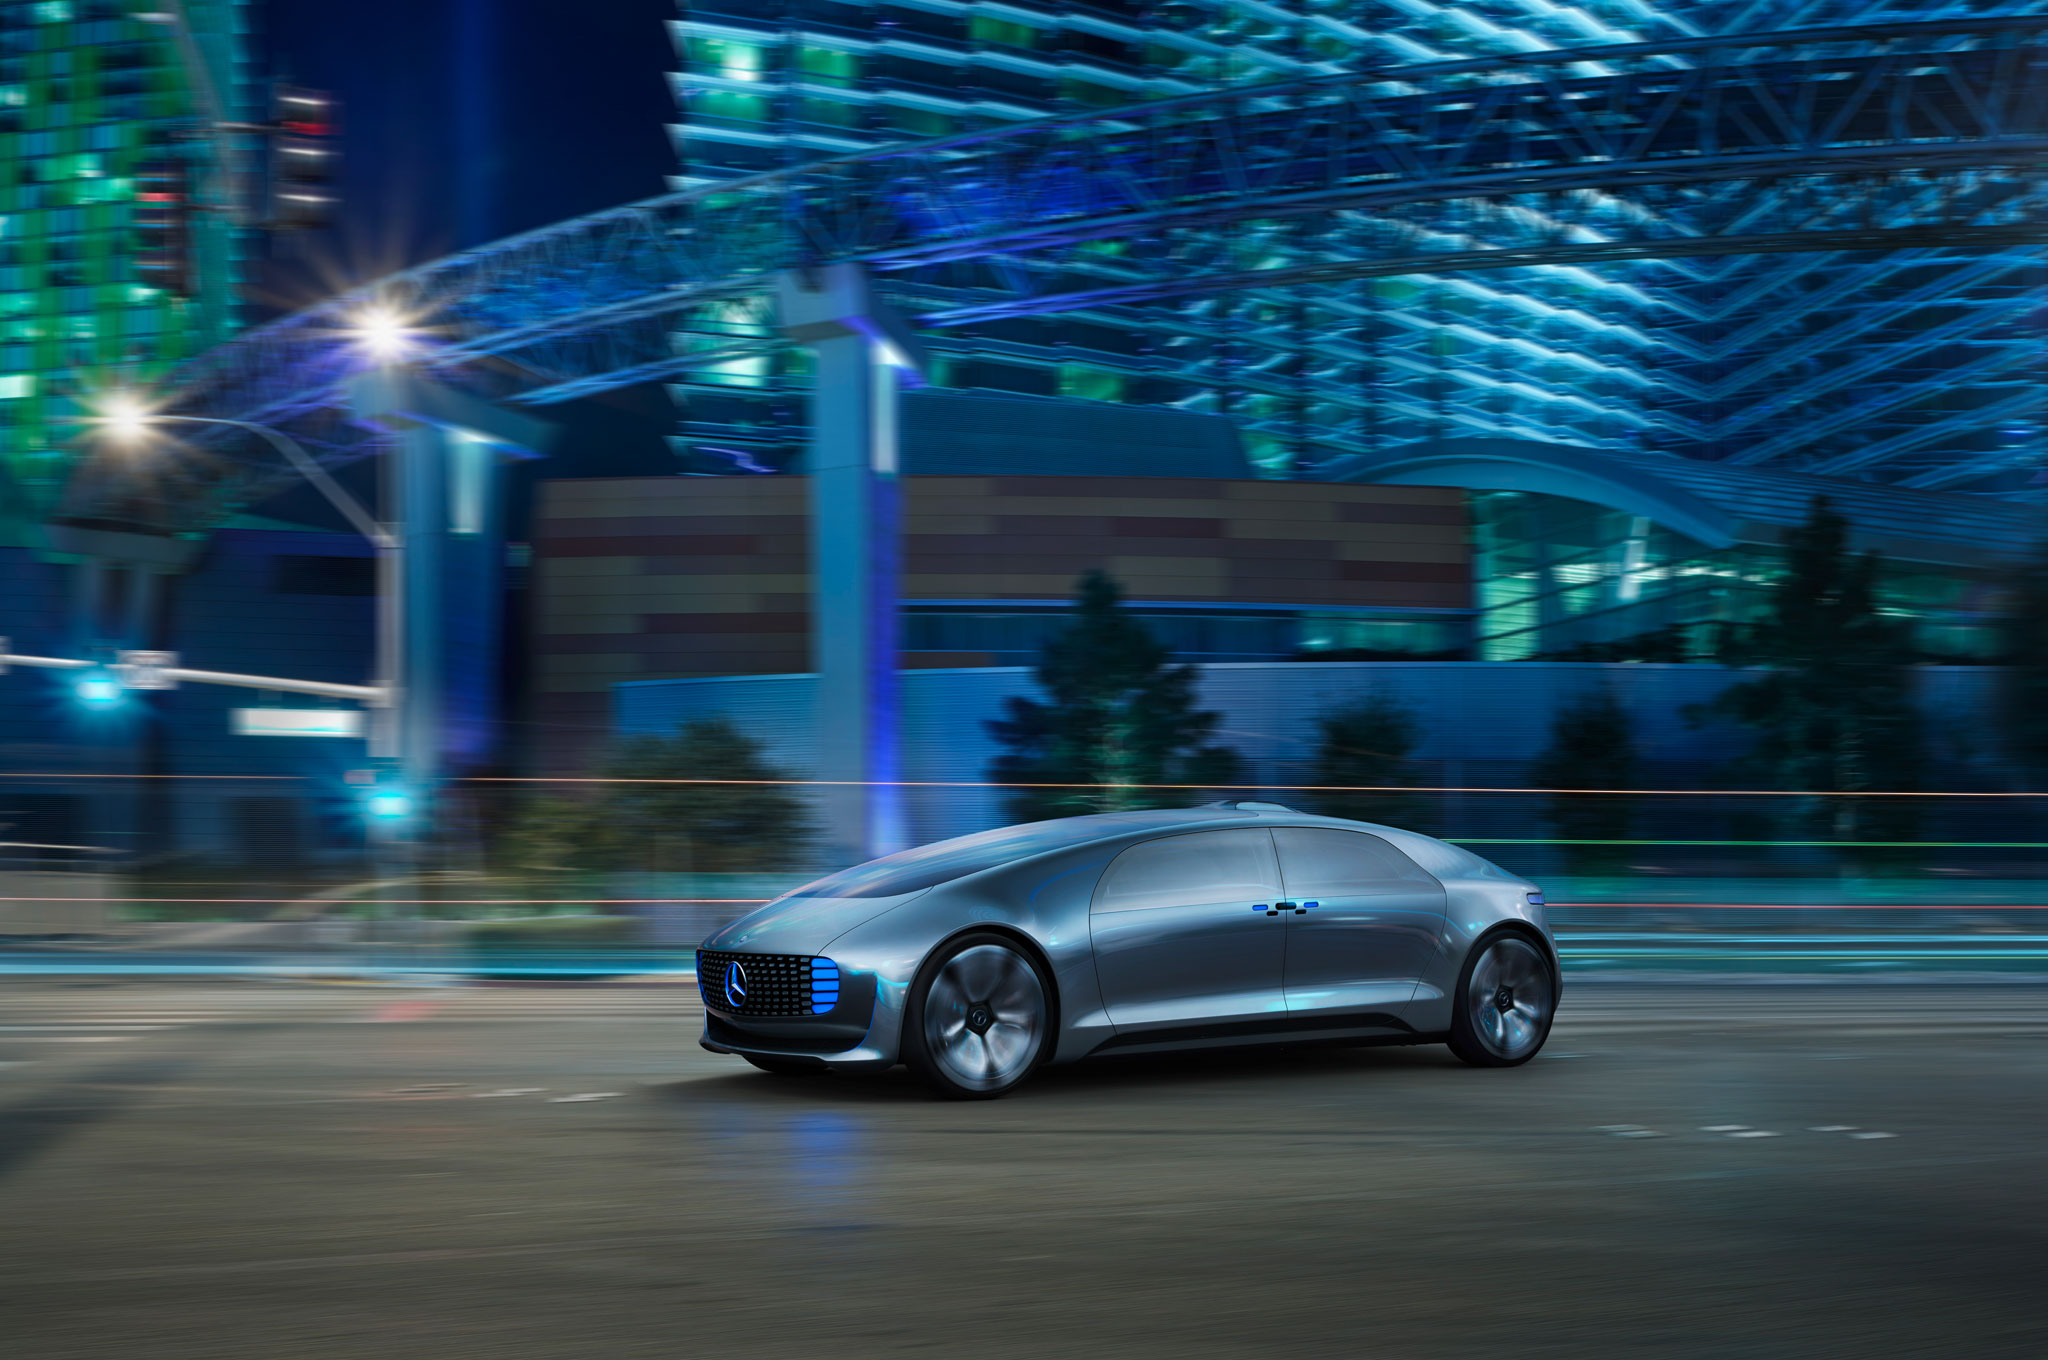 Mercedes Benz F 015 Luxury In Motion Concept Front Three Quarter In Motion 51